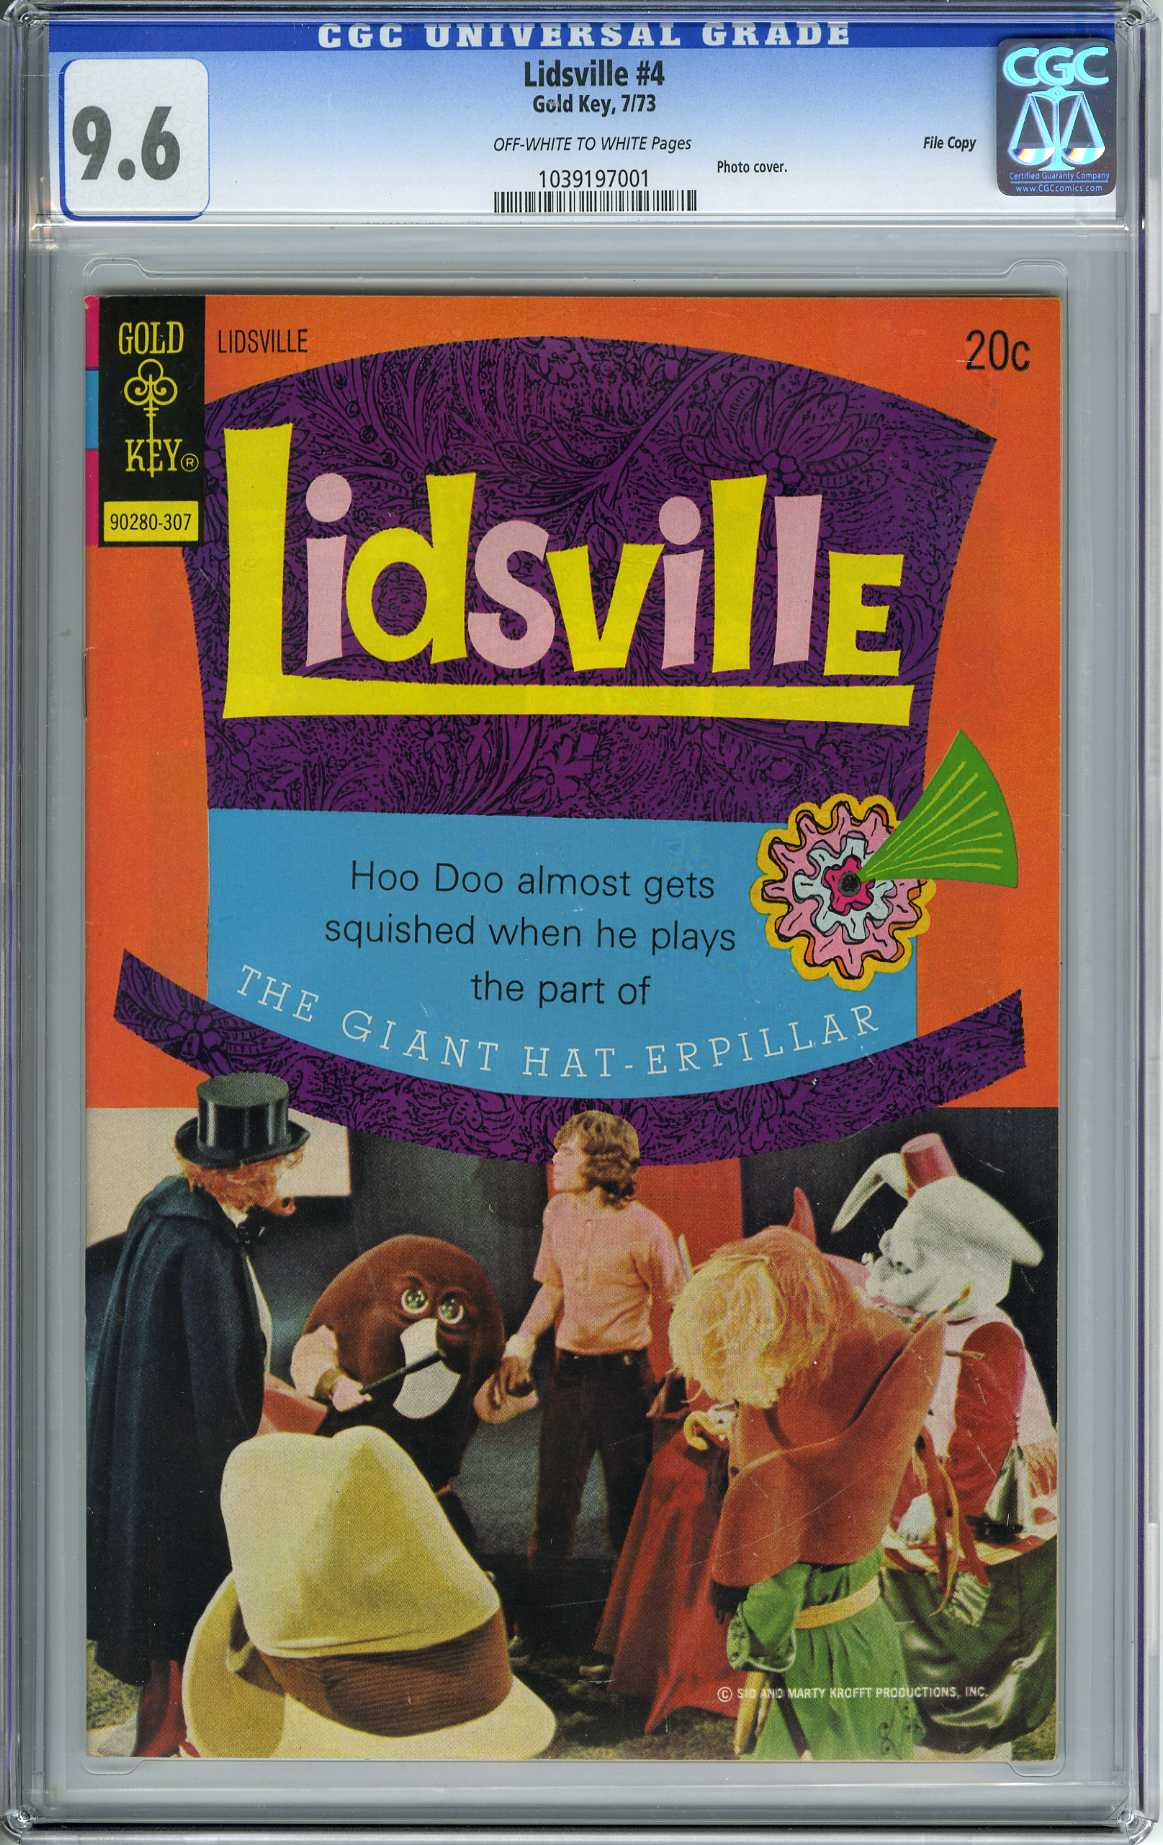 LIDSVILLE #4 (1973) CGC NM+ 9.6 - OWW Pages - FILE COPY - HIGHEST GRADED!